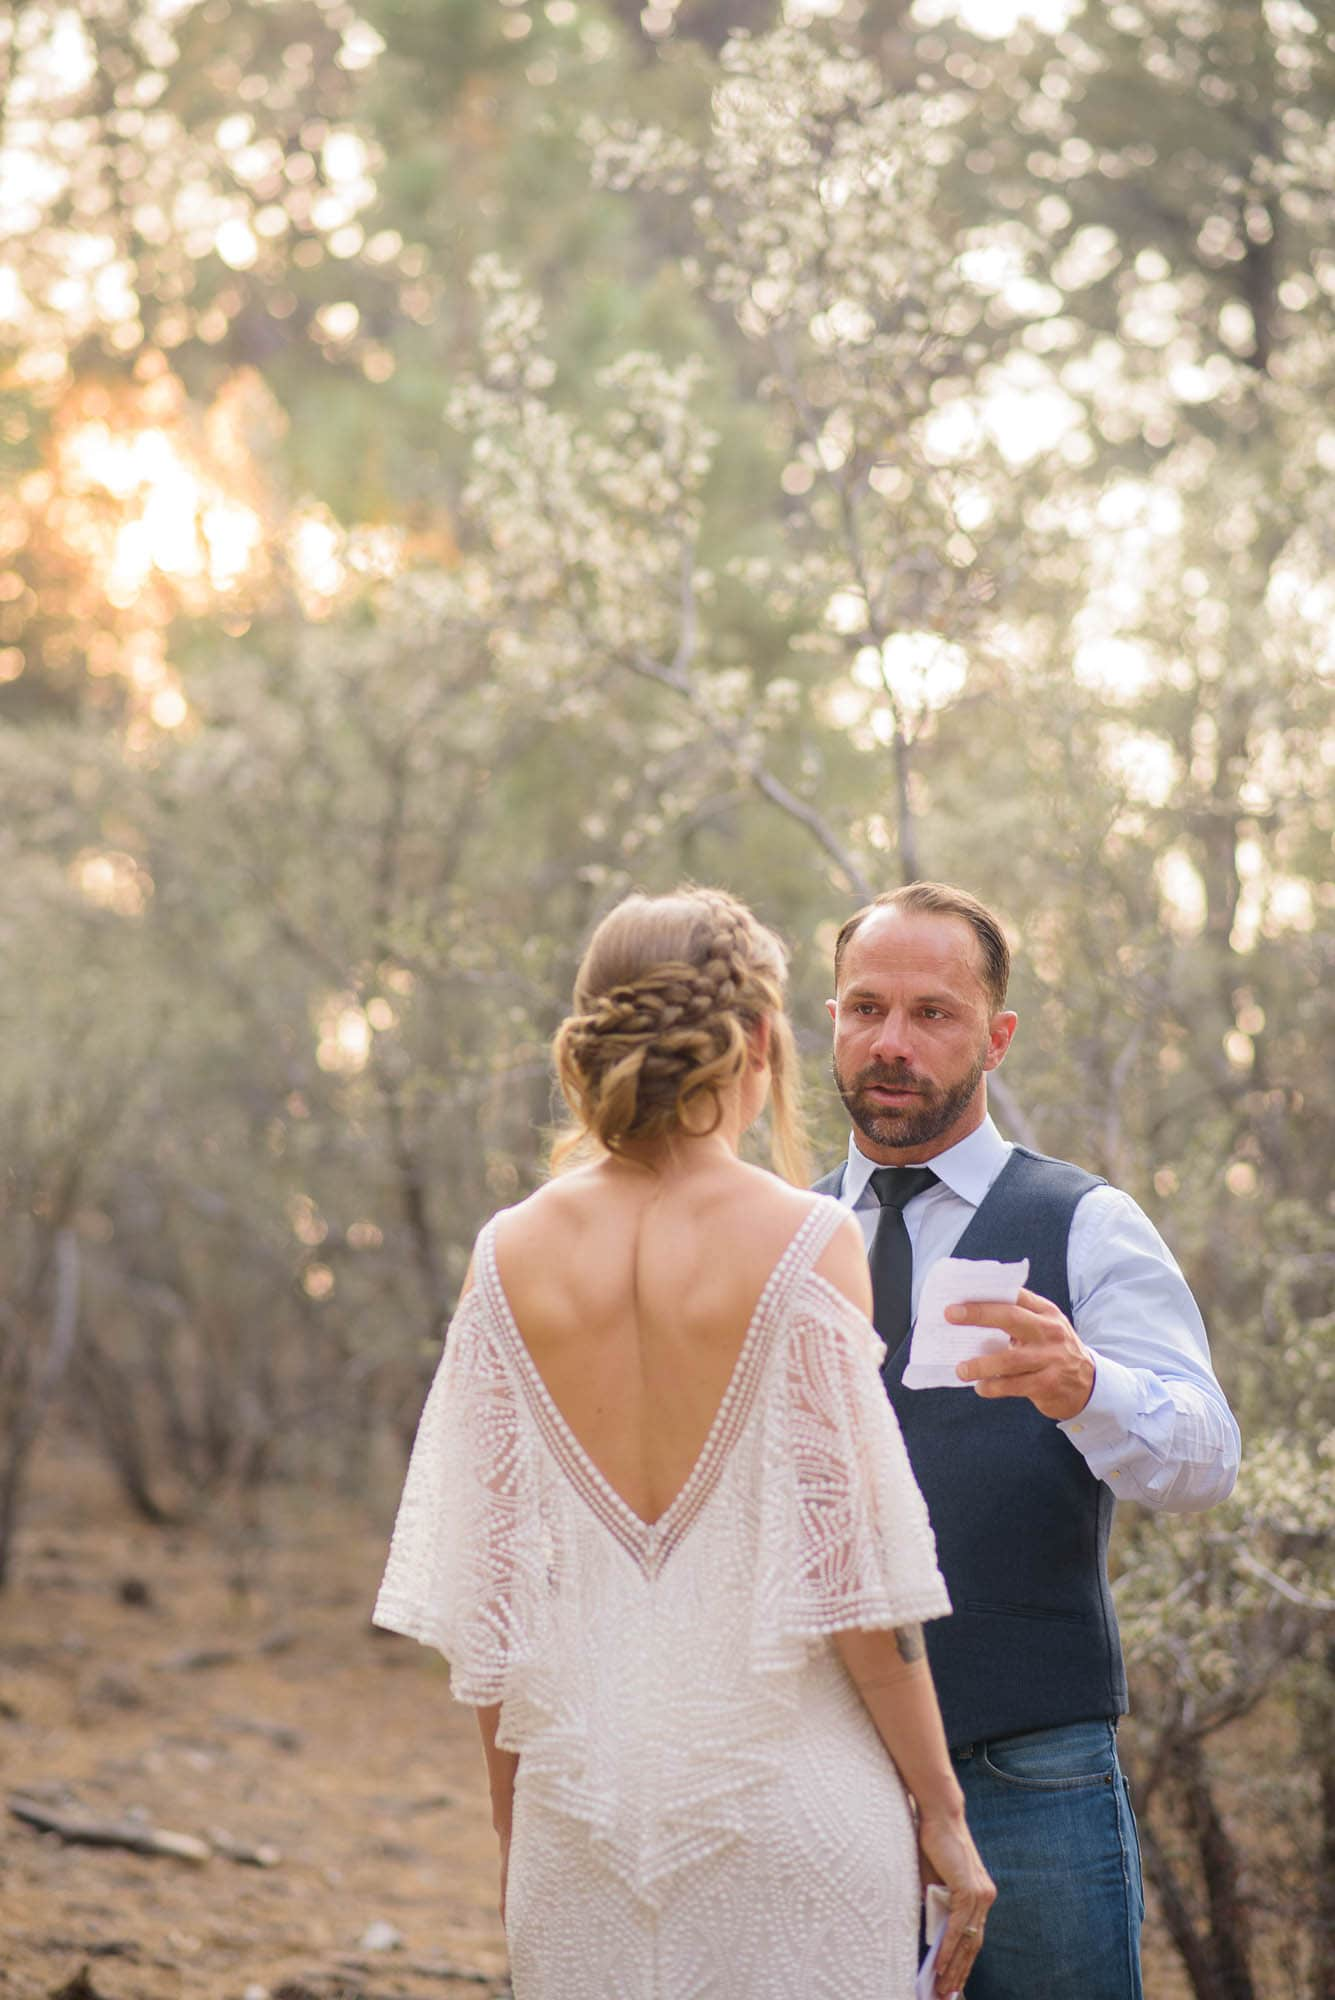 026_Alan_and_Heidi_Big_Bear_Elopement_Holly_Sean